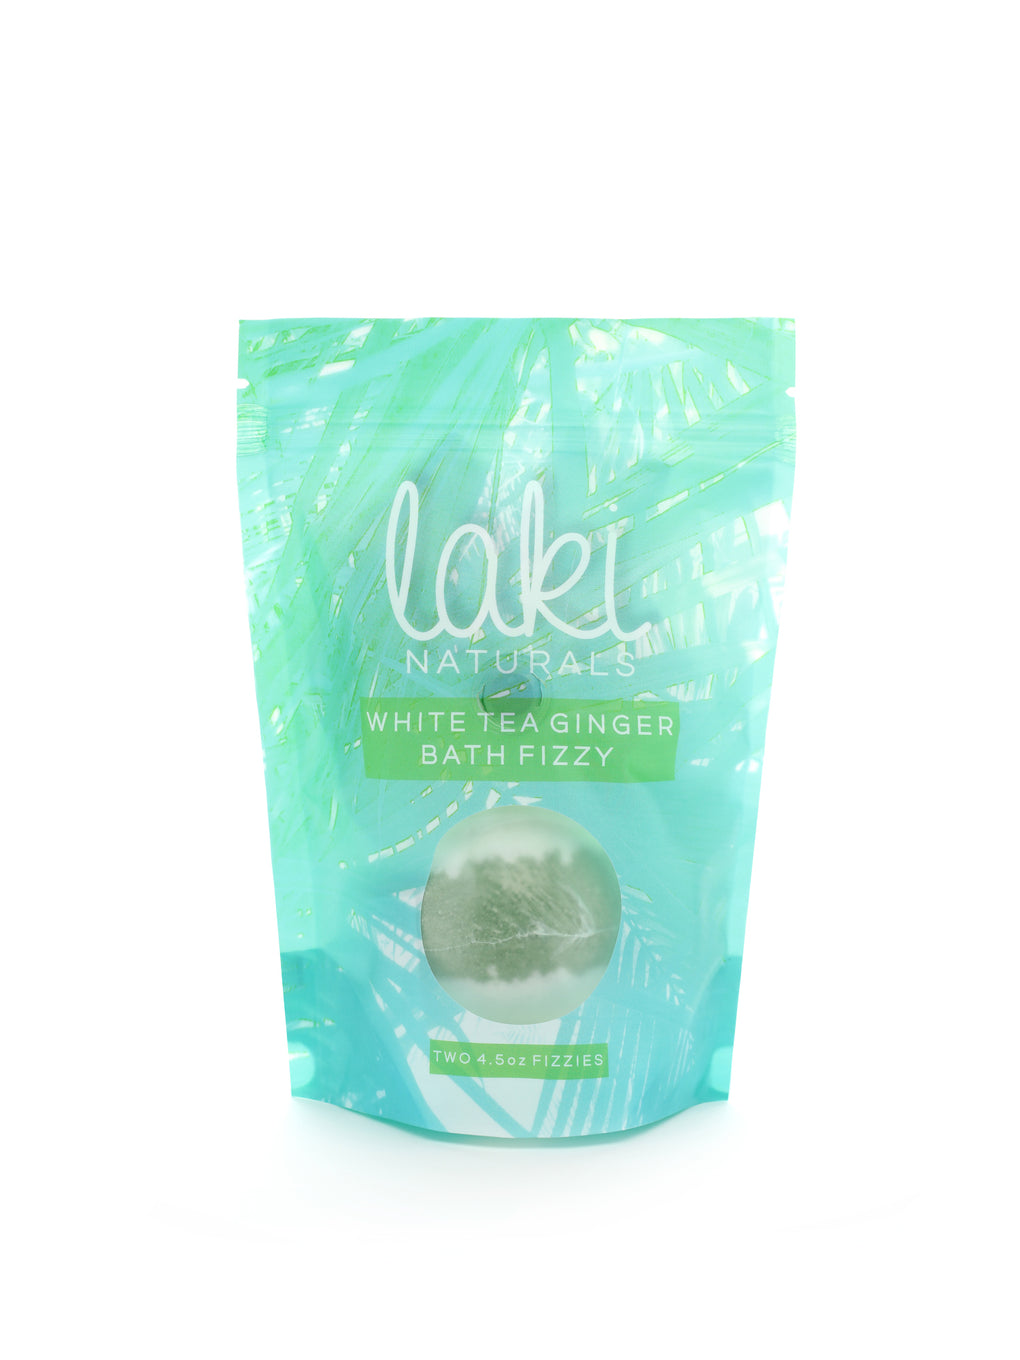 White Tea Ginger Bath Fizzies - Laki Naturals